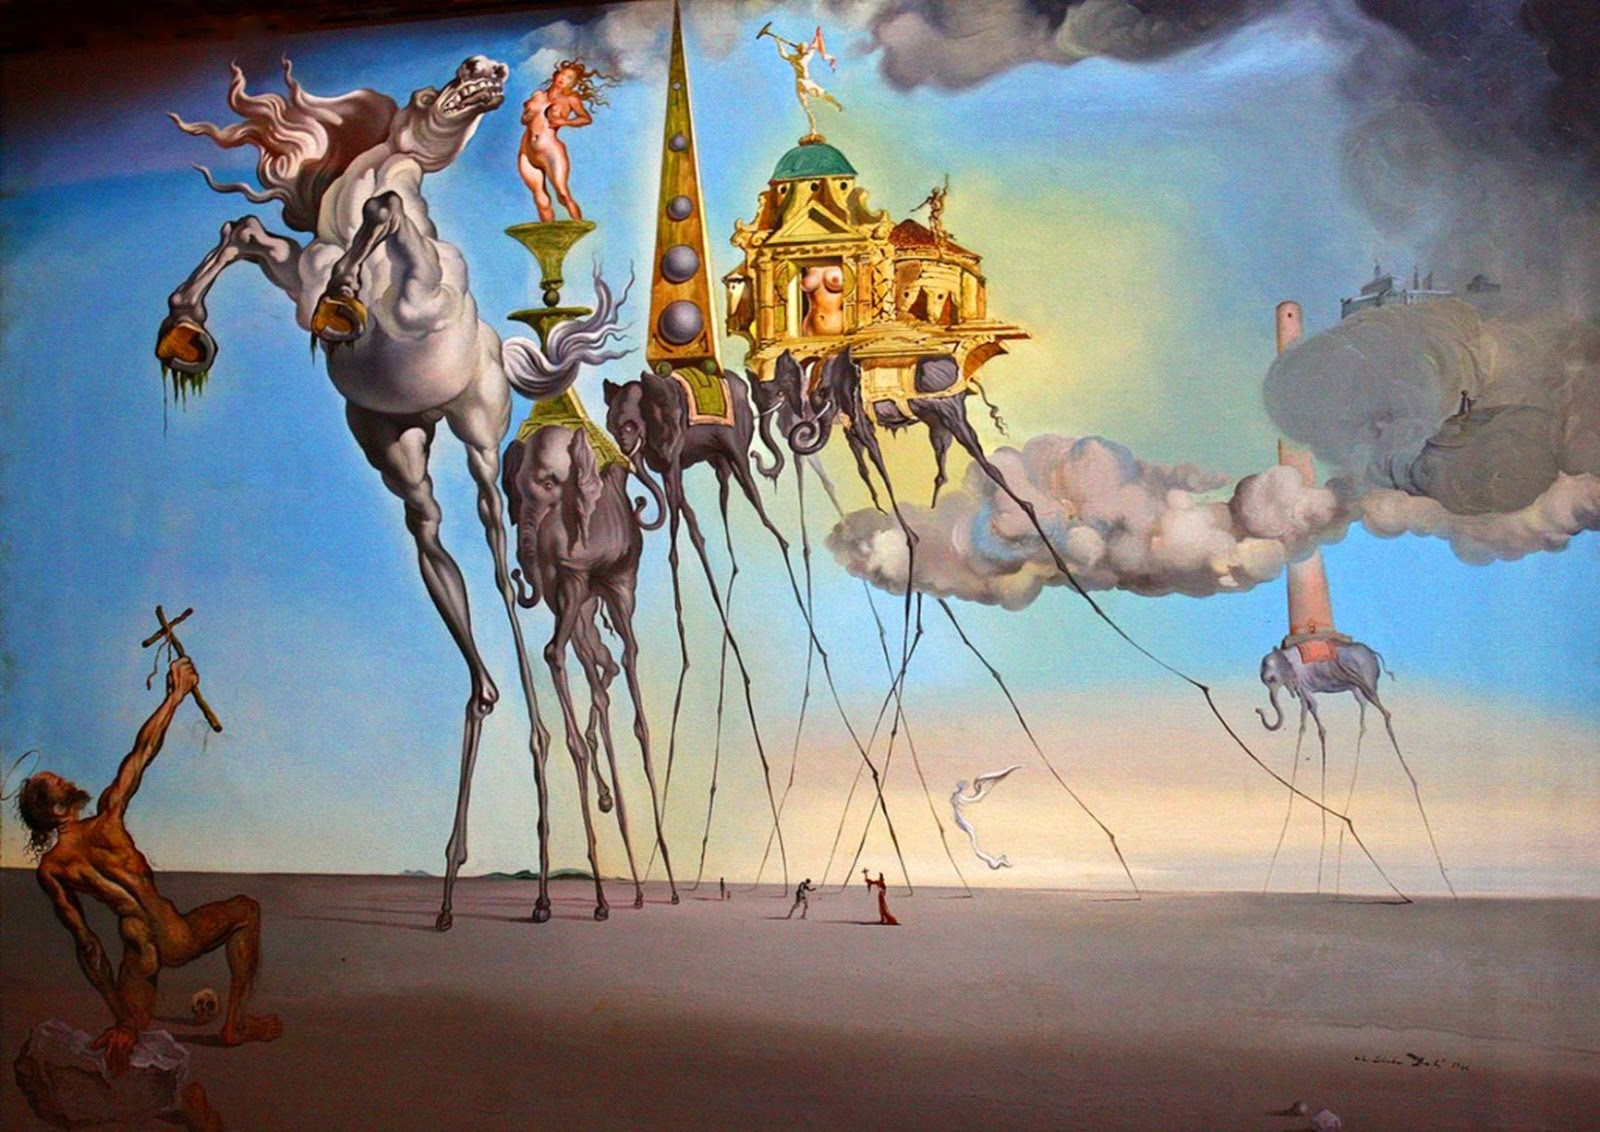 The Temptation Of St Anthony, Salvador Dalí, 1946, Oil on canvas, 89.5 x 119.5 cm, Musées Royaux des Beaux-Arts de Belgique